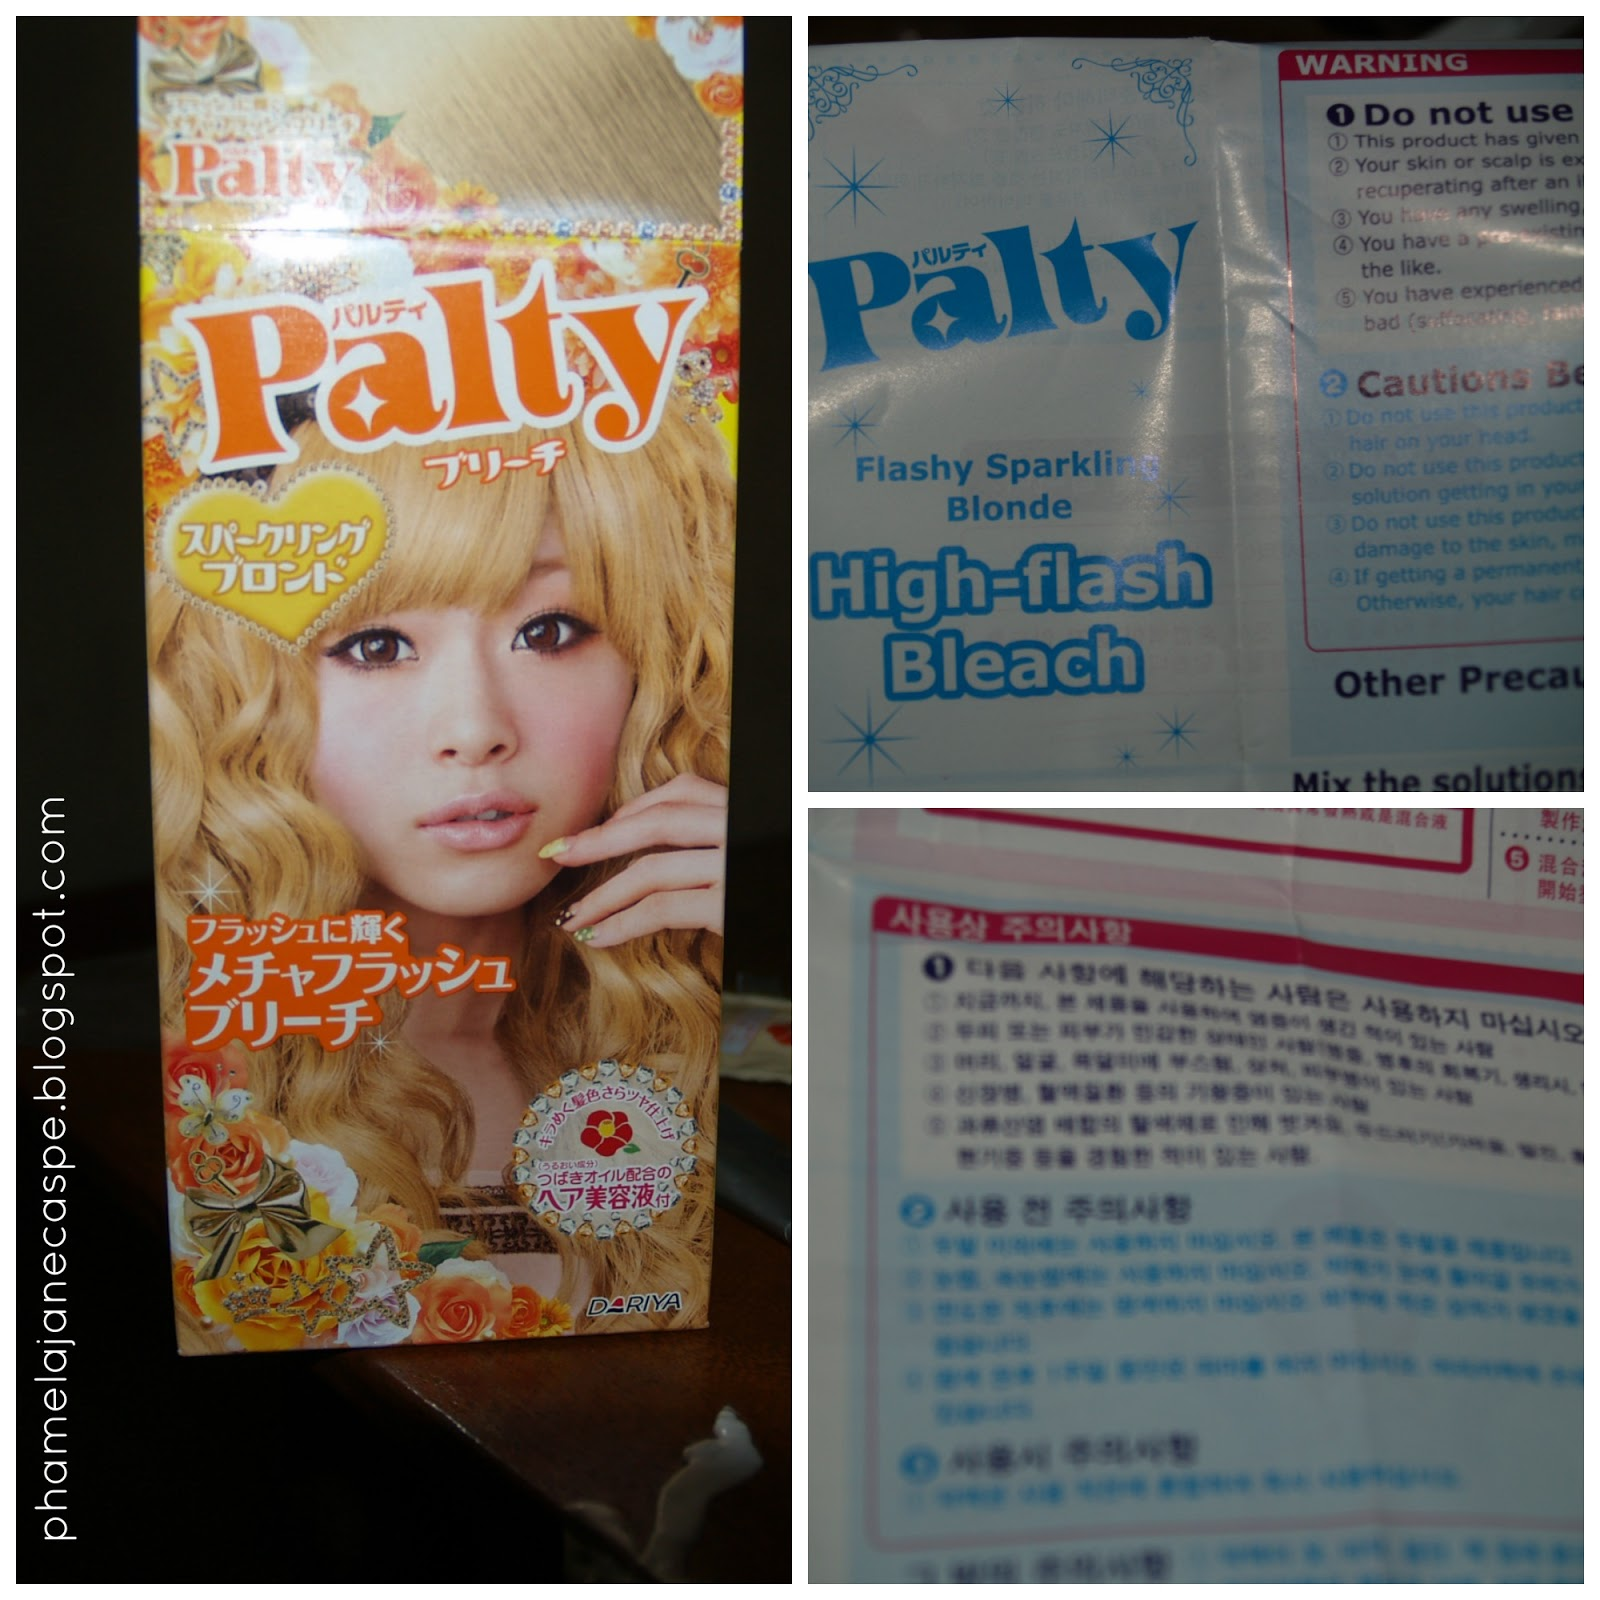 palty jelly hair dye instructions